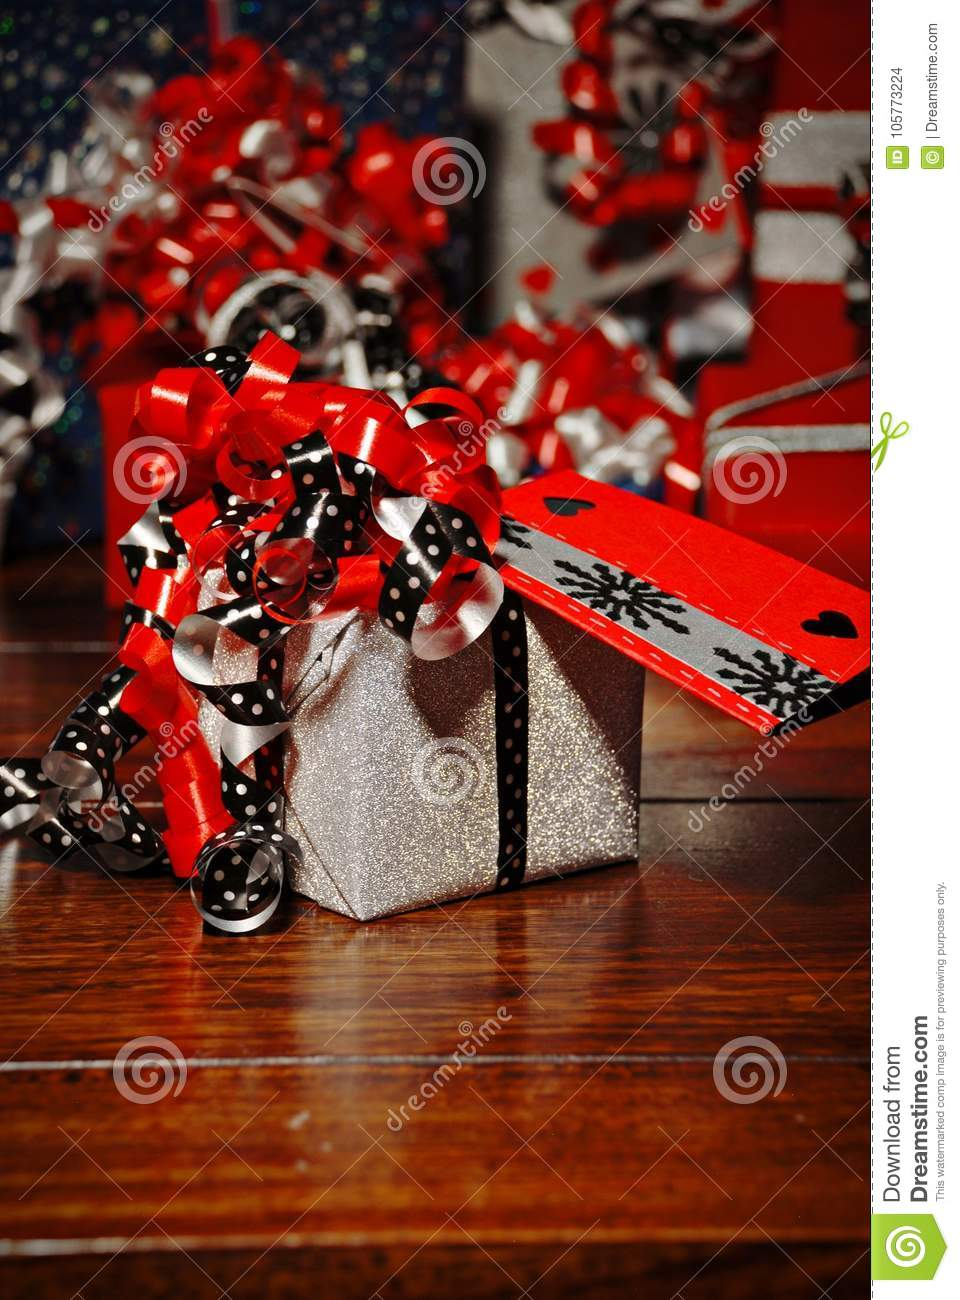 Christmas Gifts wrapped in wonderful coloured paper